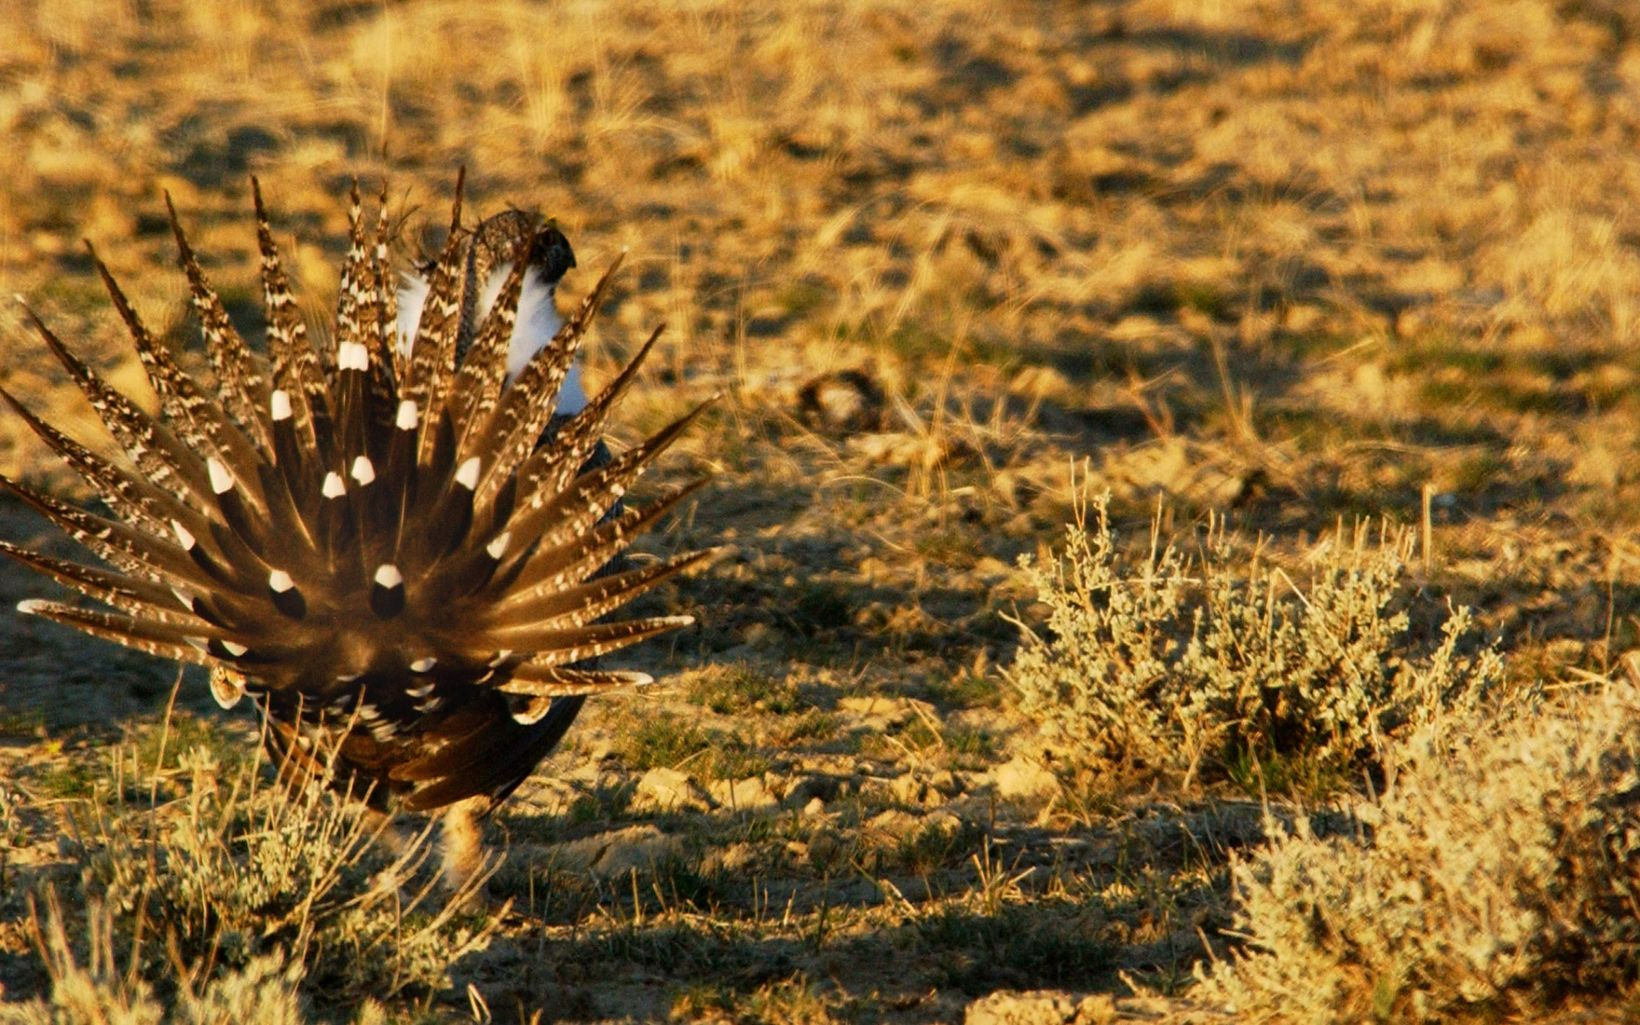 Sage grouse on lek grounds